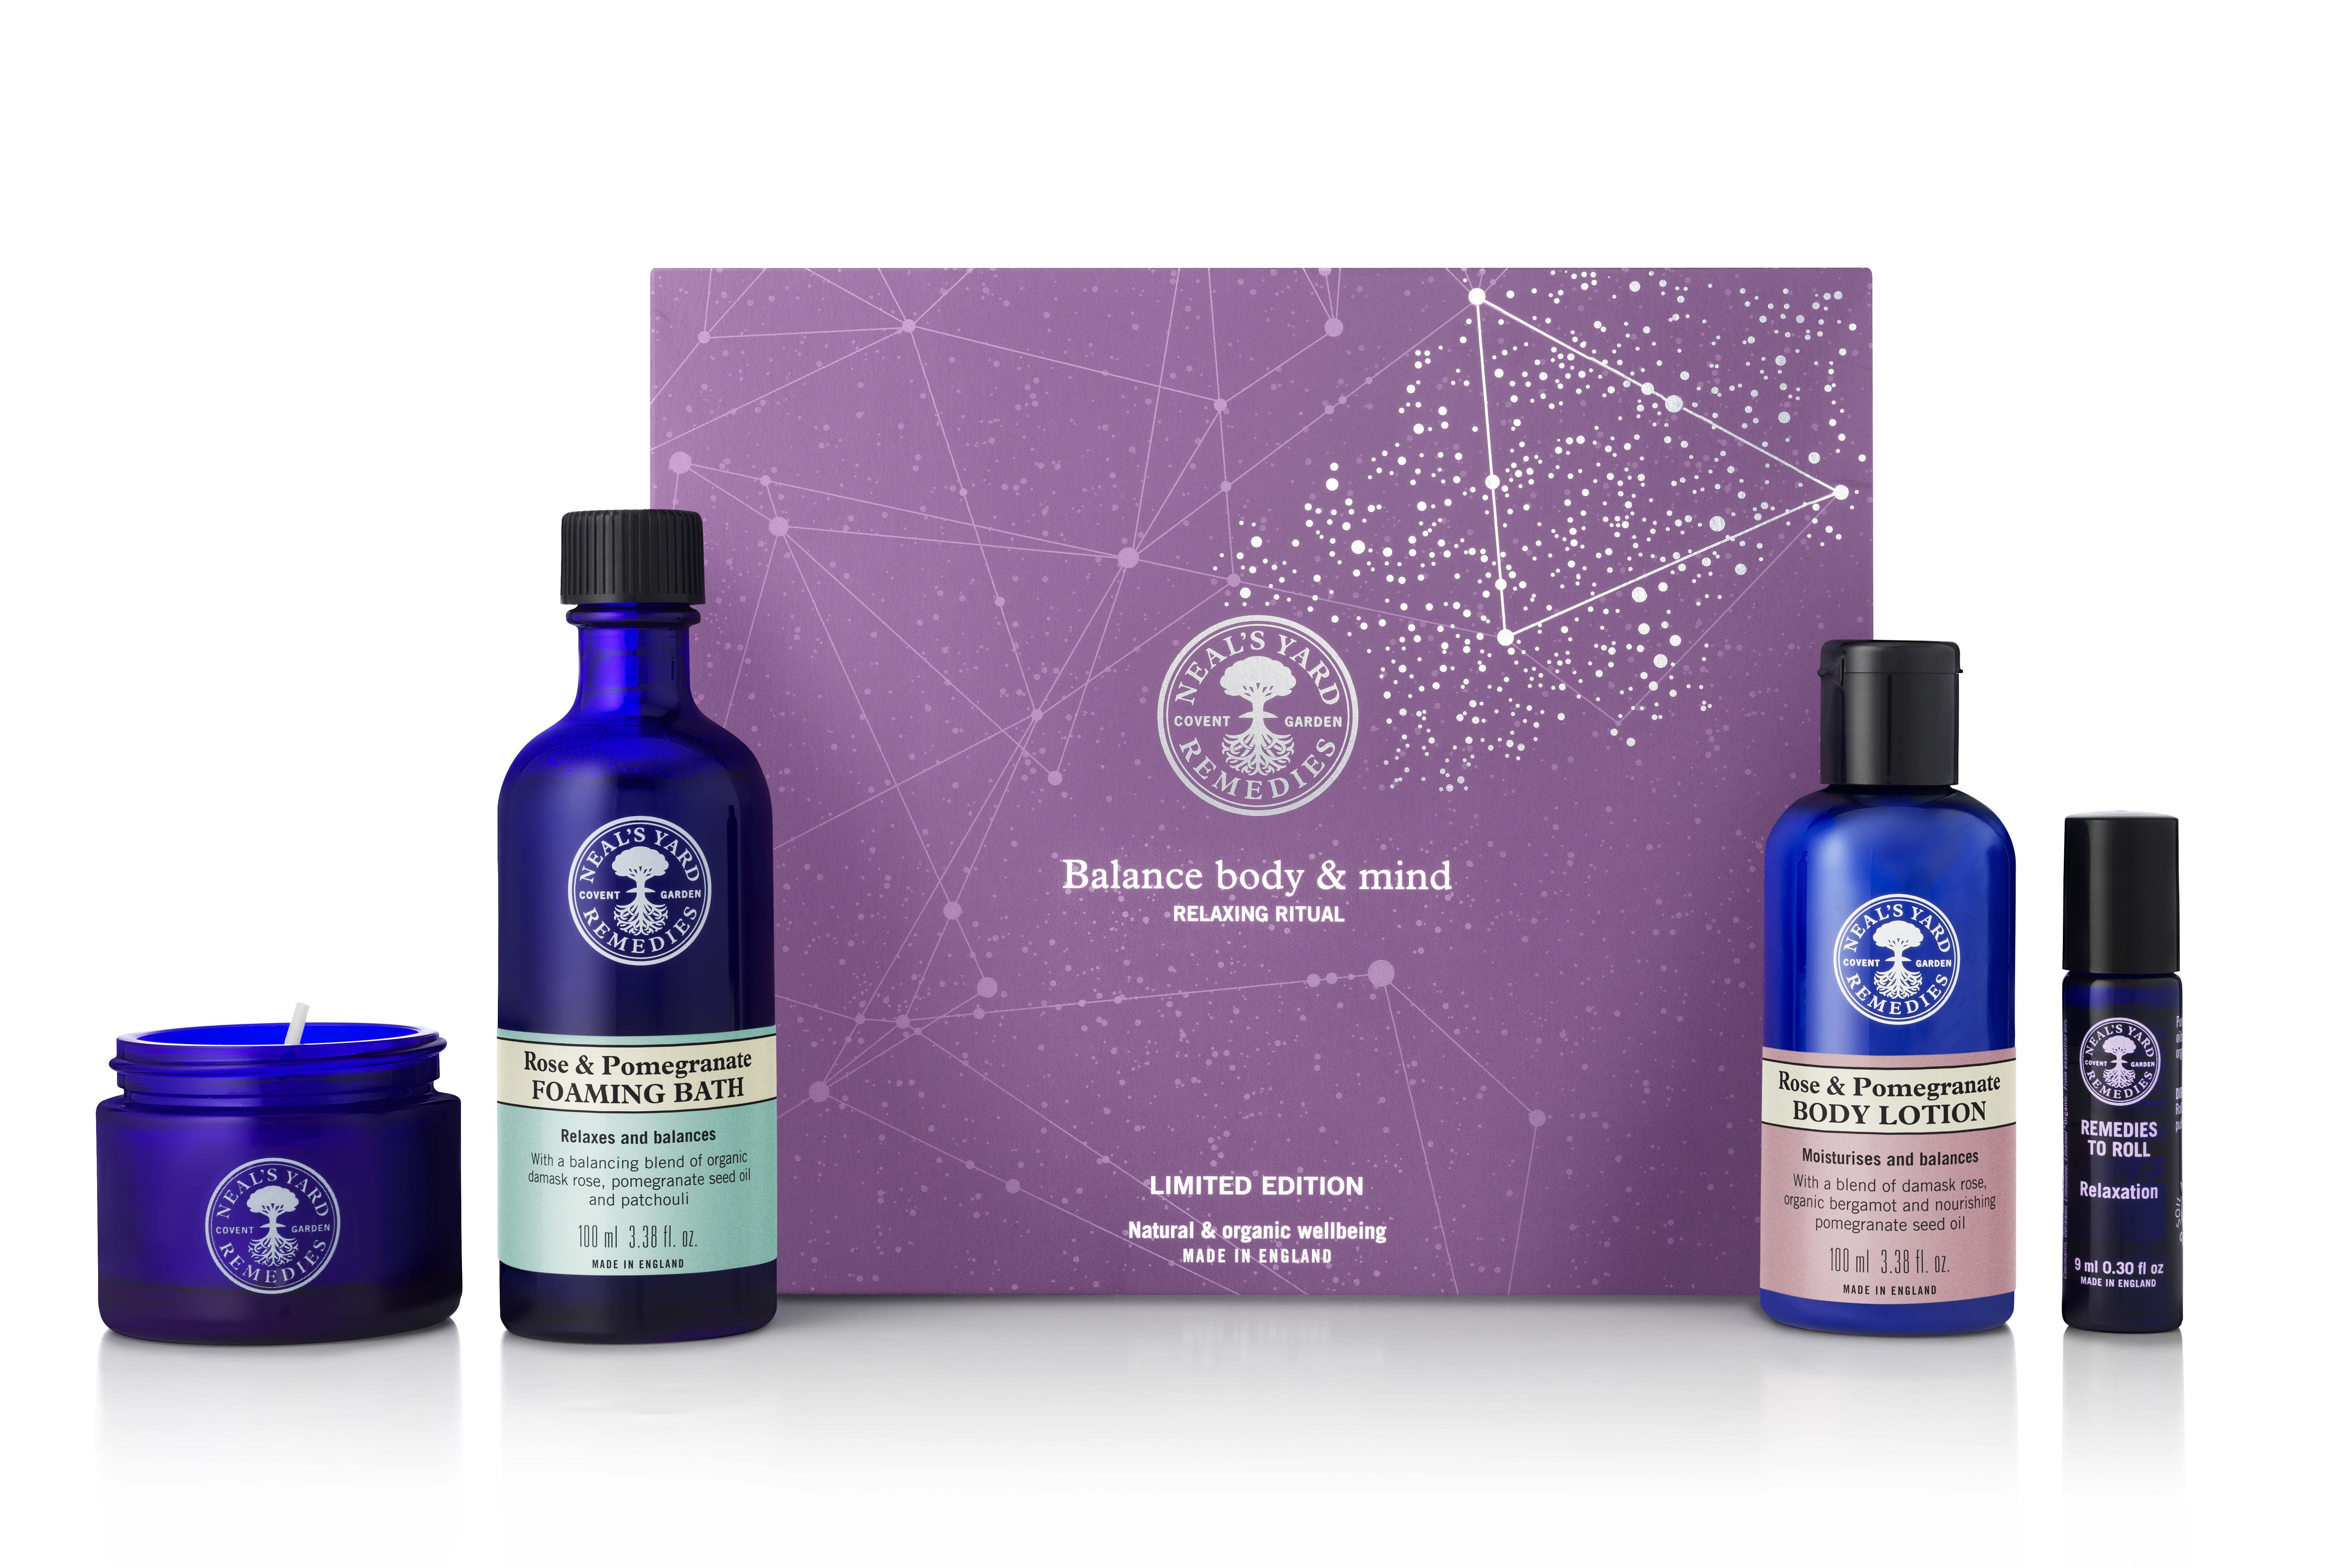 Christmas Presents For Important People In Your Life 8911 Balance Body Mind Relaxing Ritual 2